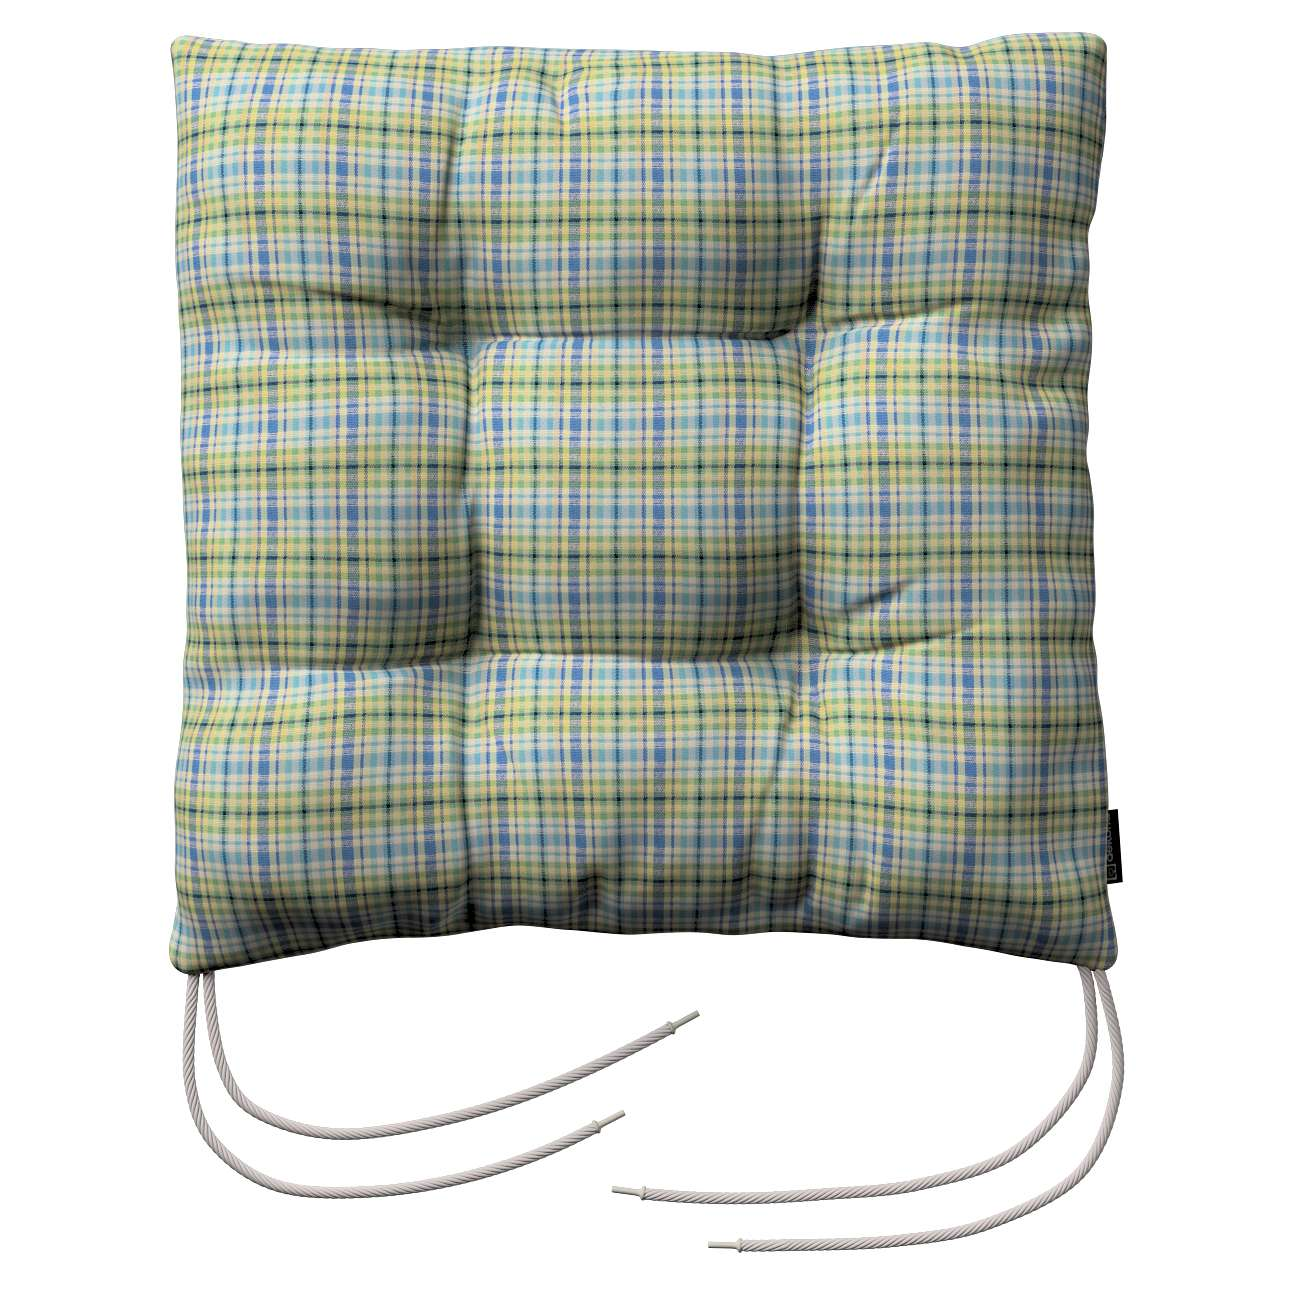 Jack seat pad with ties in collection Bristol, fabric: 126-69